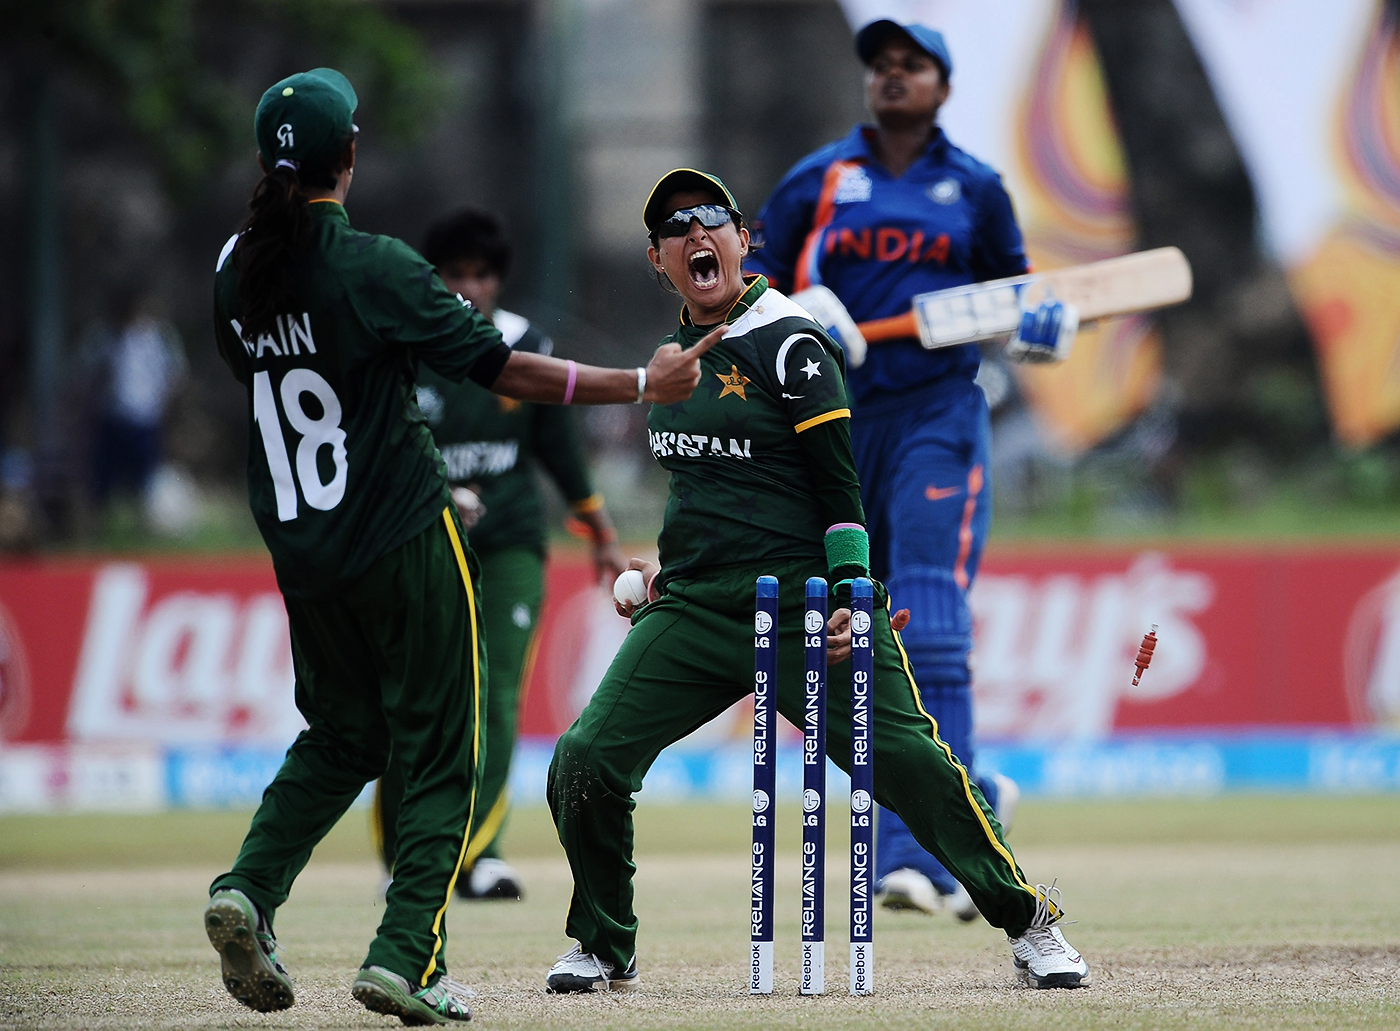 Sana Mir celebrates Pakistan's first win over India - at the 2012 World T20